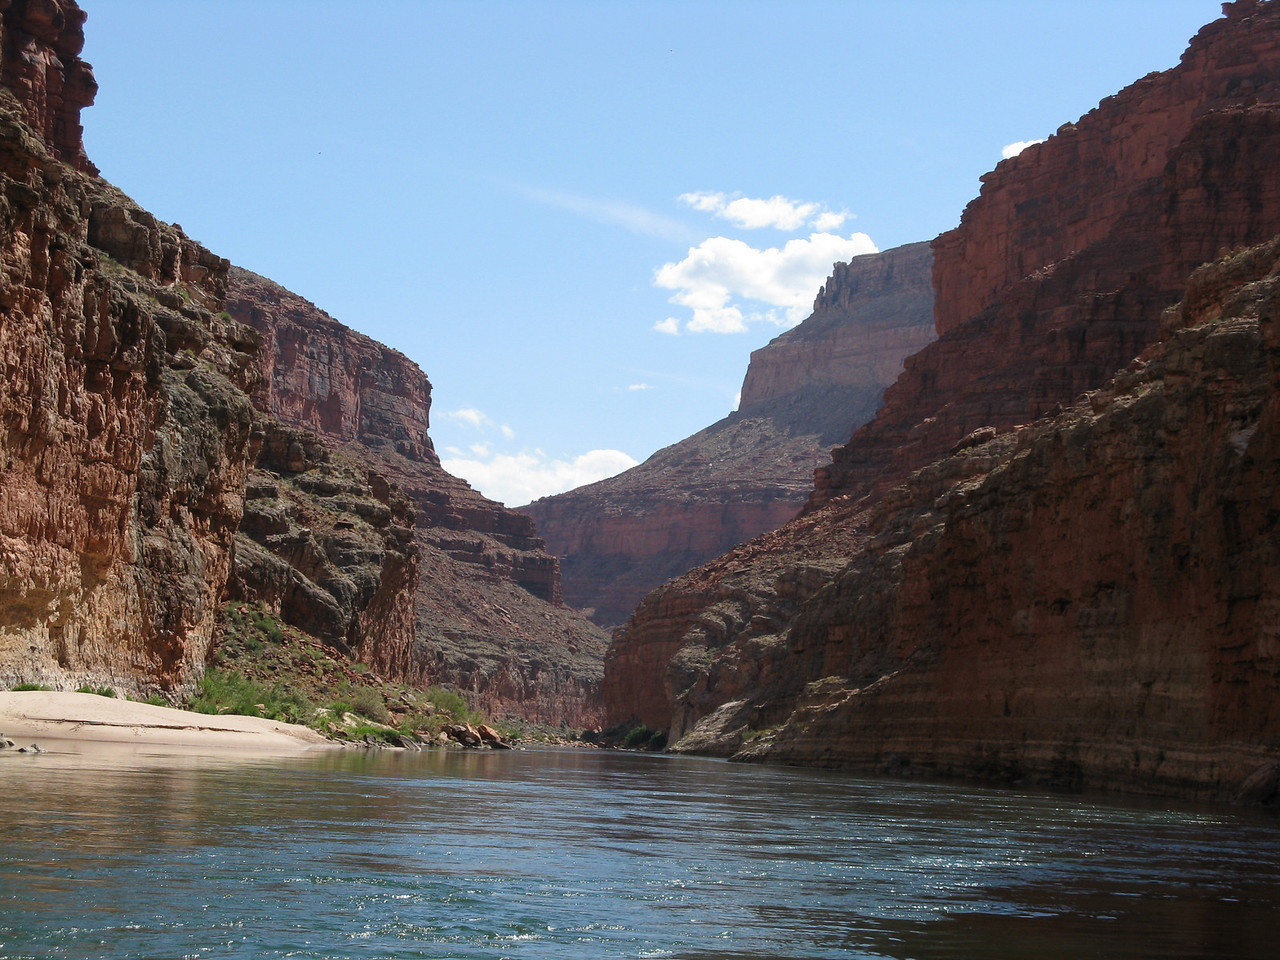 About mile 24:  Flat water in Marble Canyon.